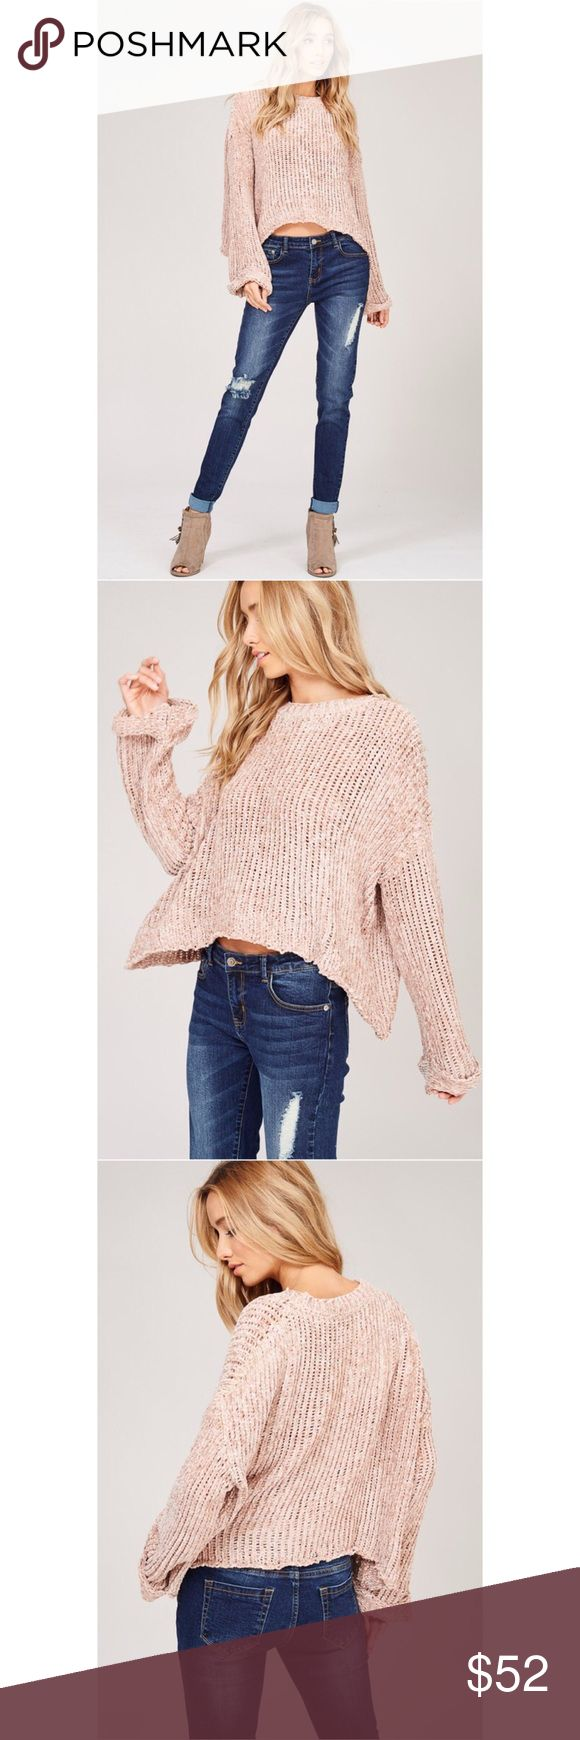 Chenille knit pullover sweater Chenille knit pullover sweater - round neck - bell sleeves - loose fit. Pre-order please allow 5-7 business days to ship. Expect shipping date 11-15  📌NO TRADES 📌PRICE IS FIRM Sweaters Crew & Scoop Necks